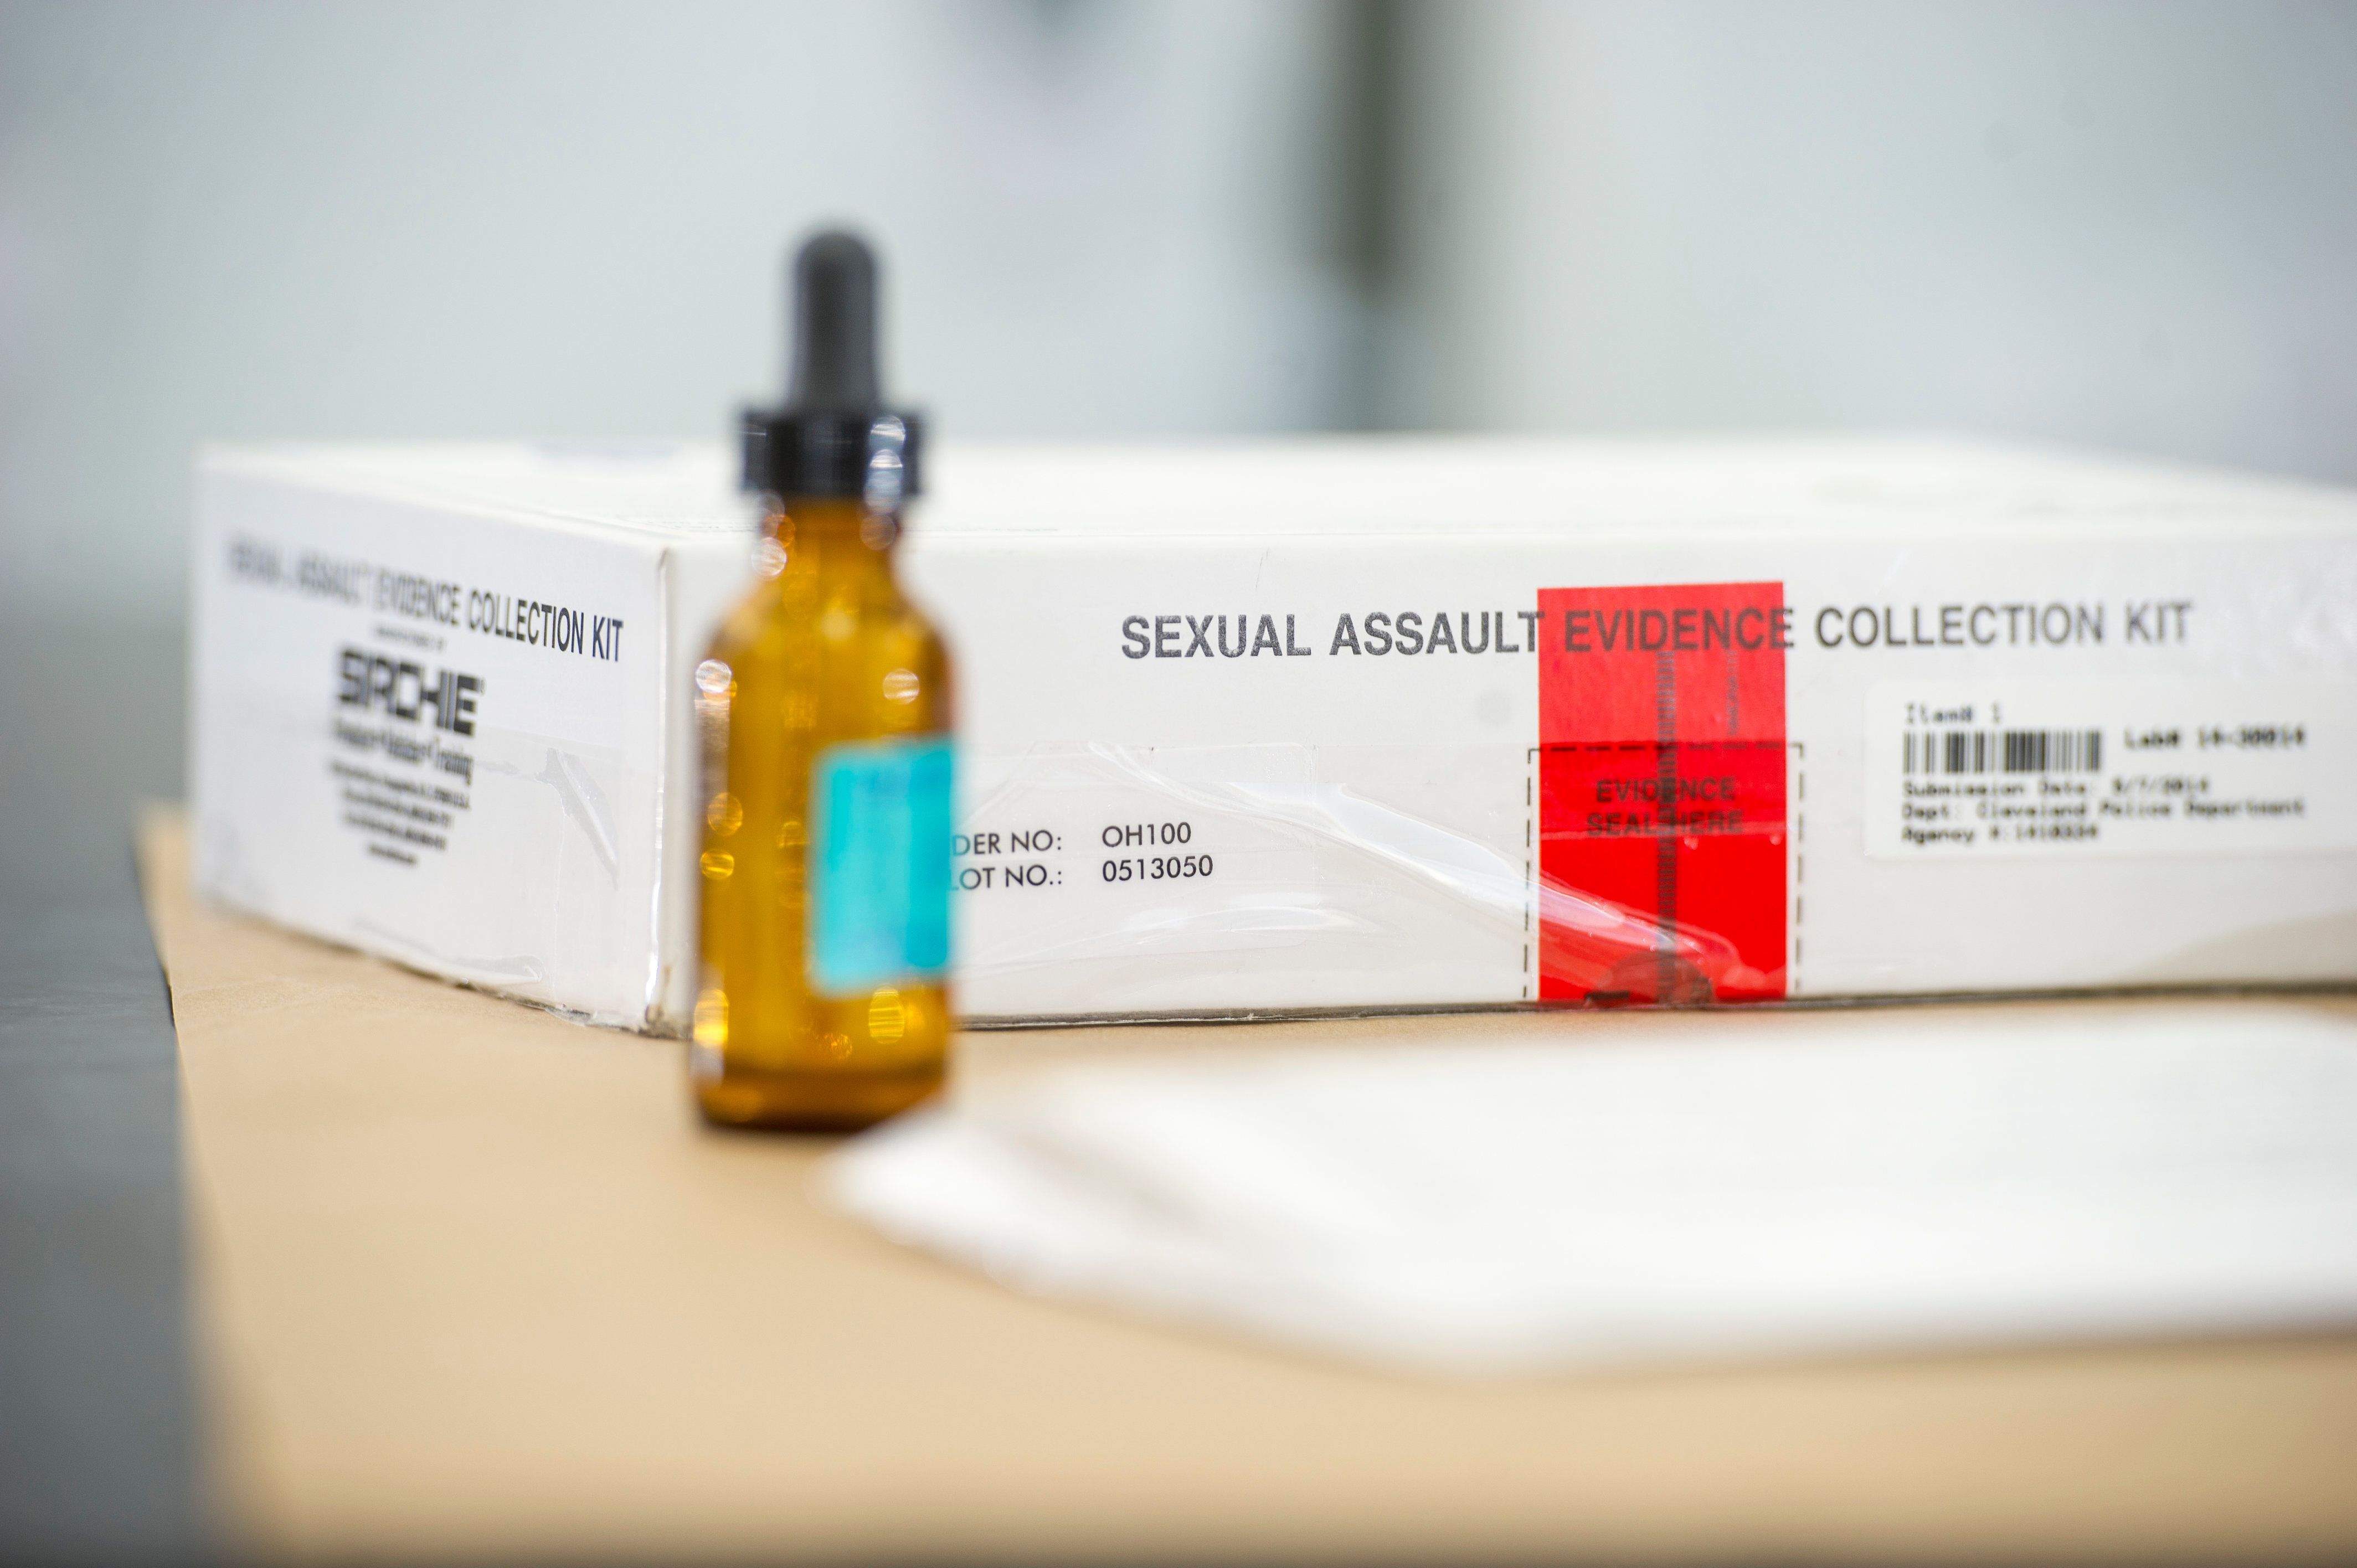 A sexual assault evidence collection kit from the Ohio Bureau of Criminal Investigation Laboratory.